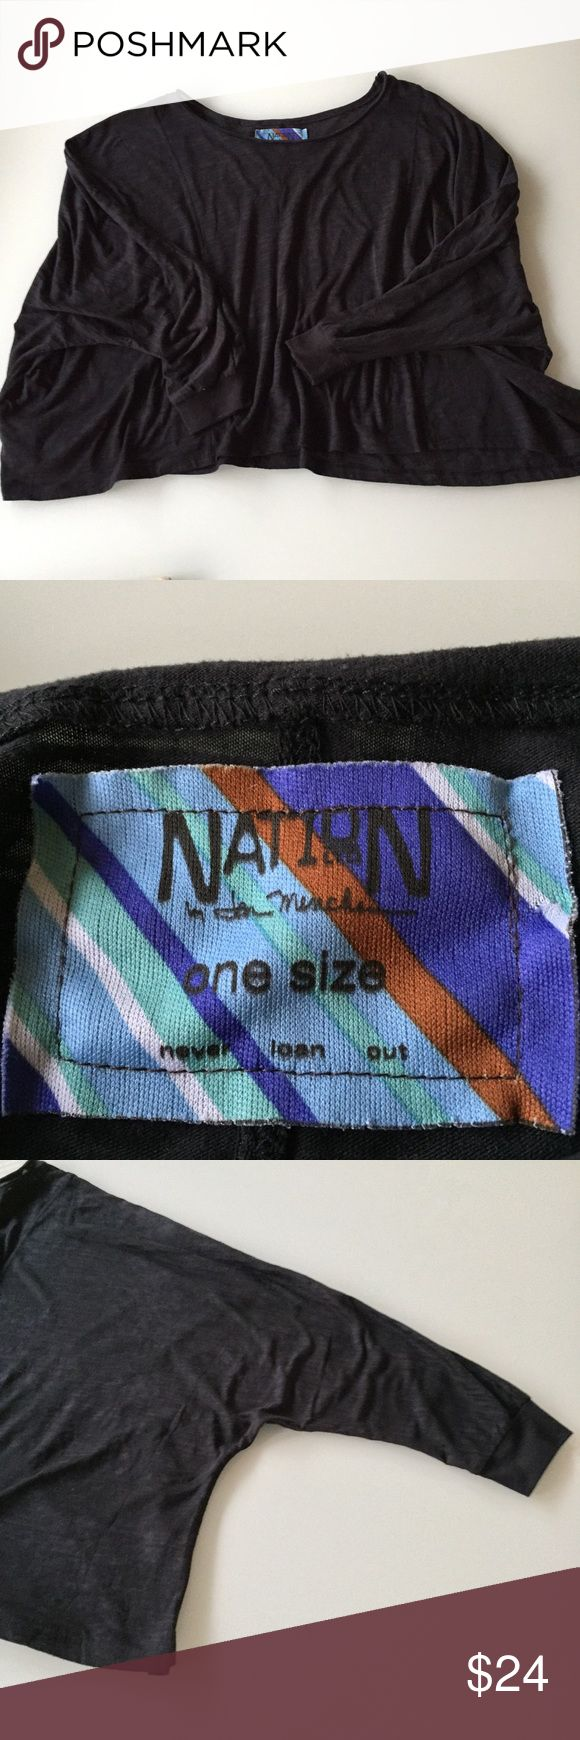 NATION LTD by Jen Menchaca/Revolve brand NATION LTD t shirt / 3/4 sleeve / super comfy / cropped / one size / oversized  / fabric is a soft tissue cotton / Nation LTD Tops Crop Tops